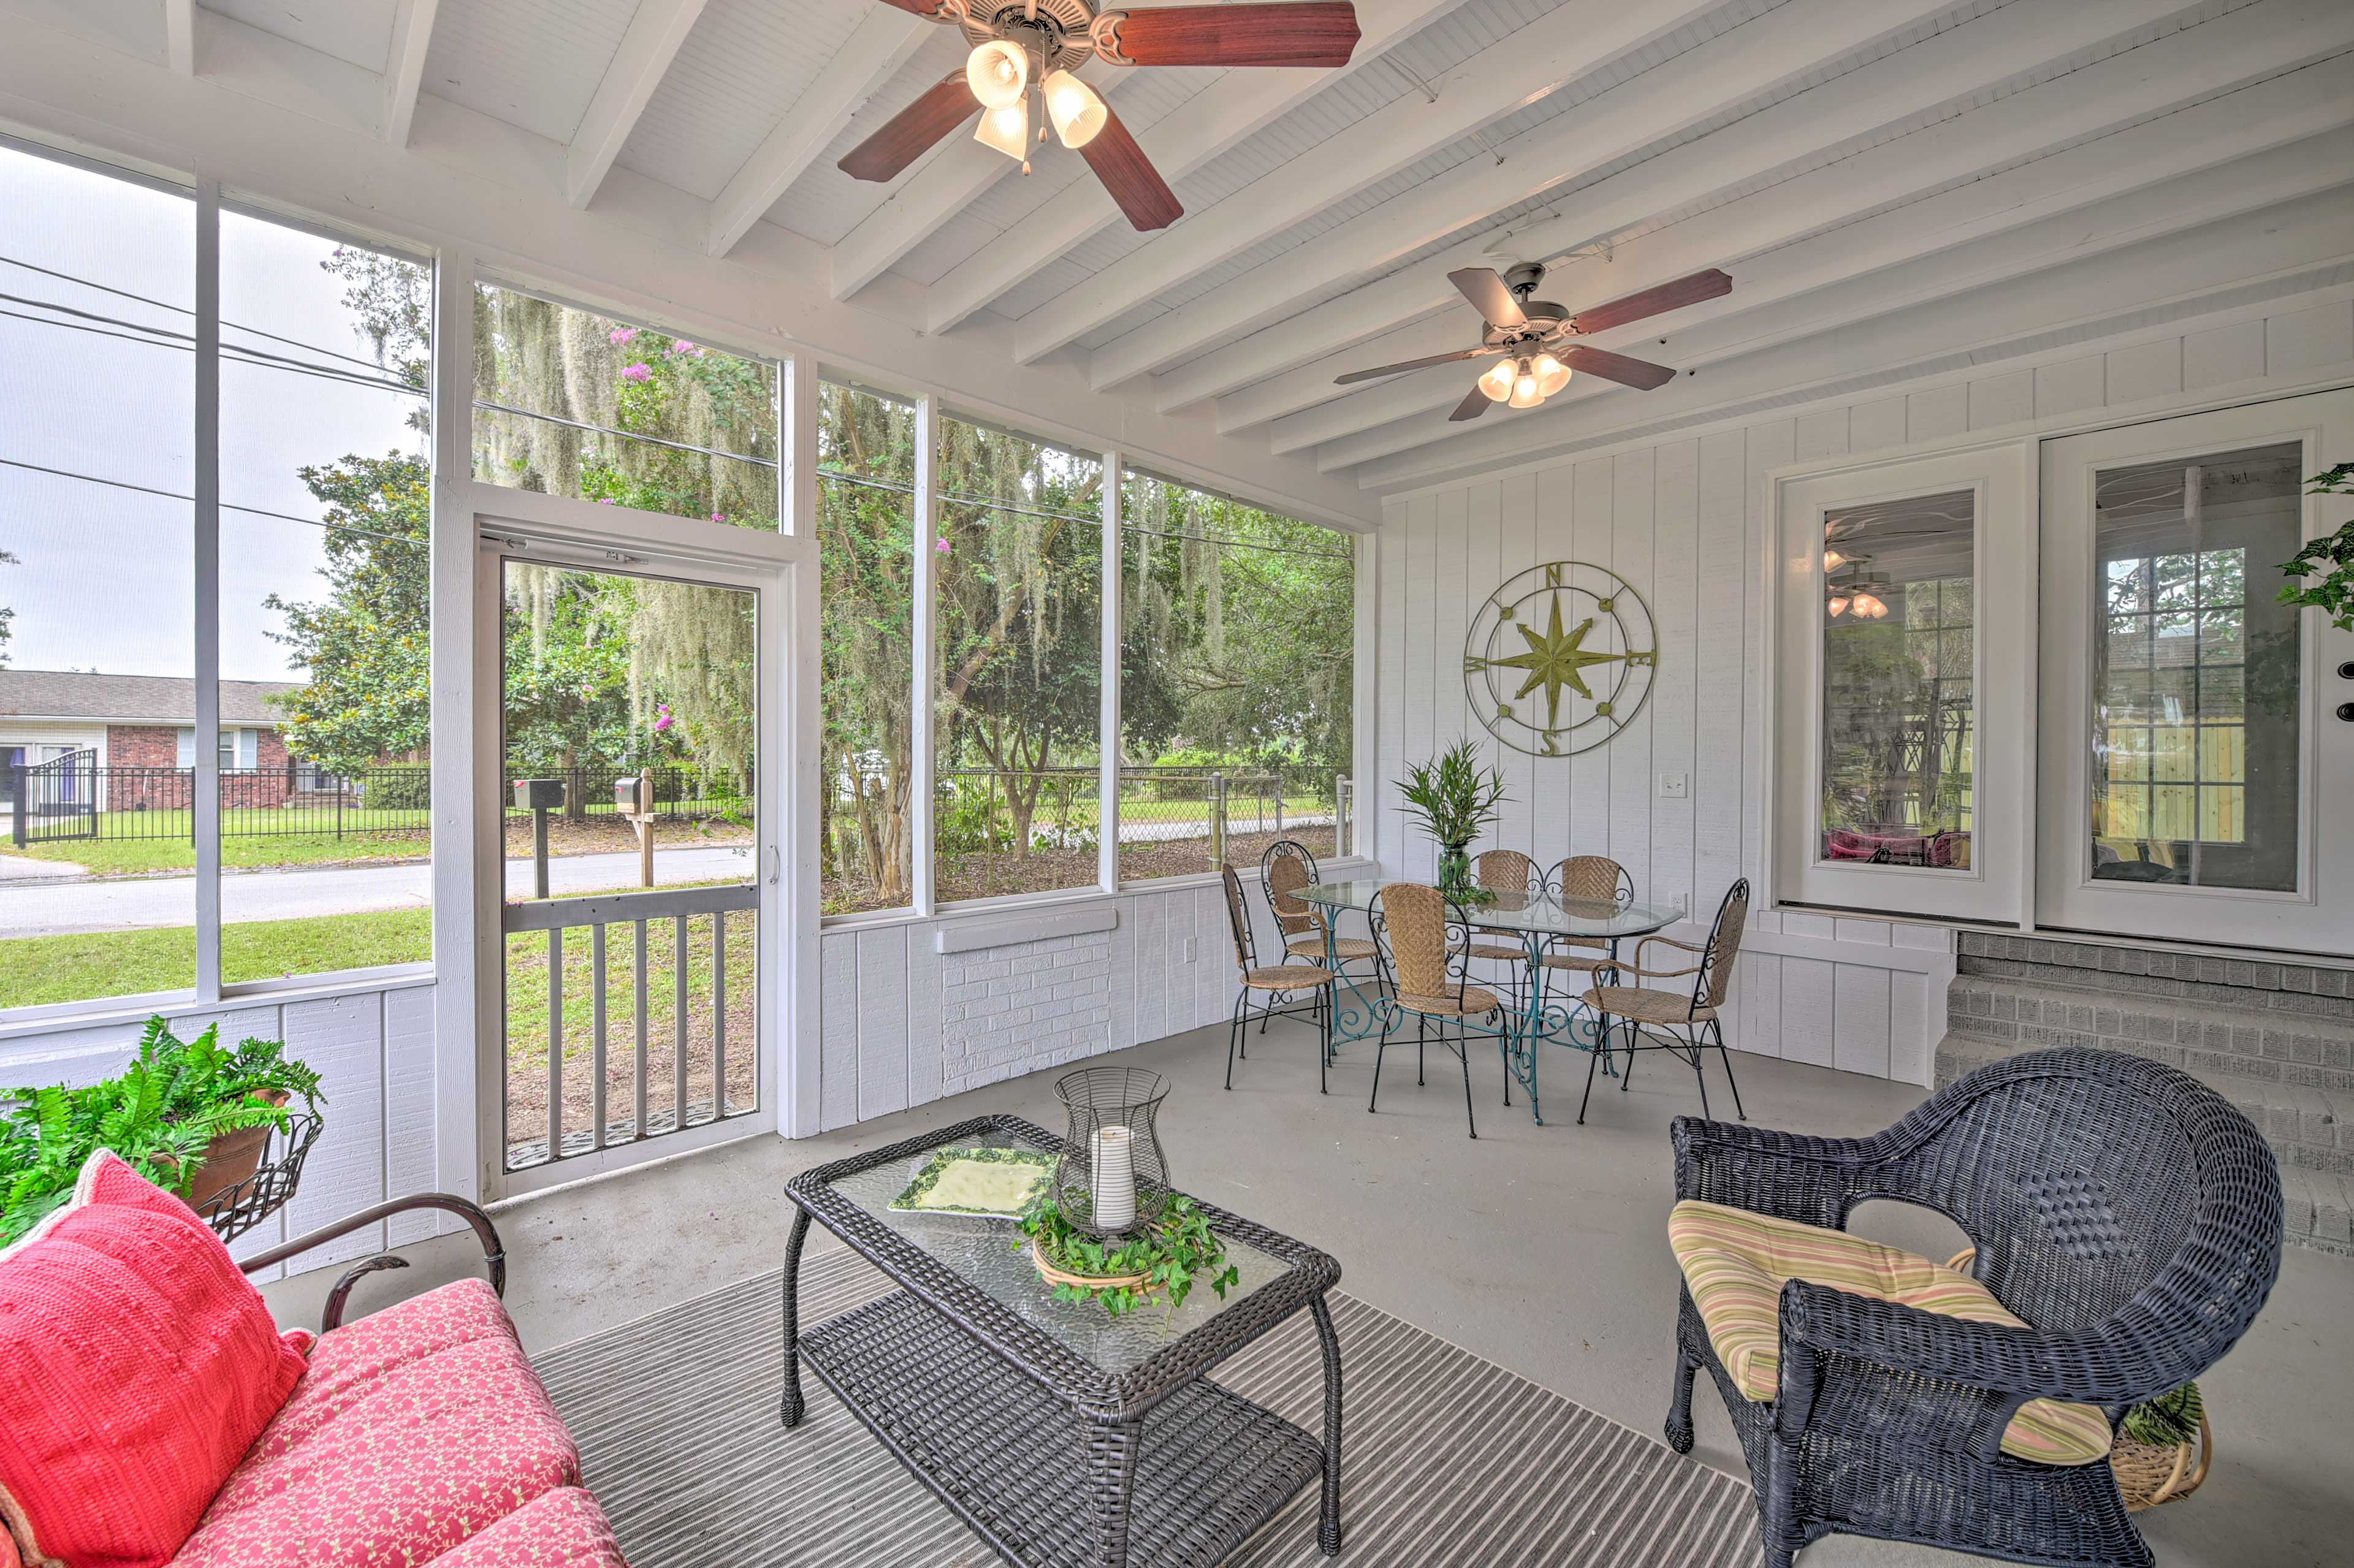 The patio is a great space to entertain.